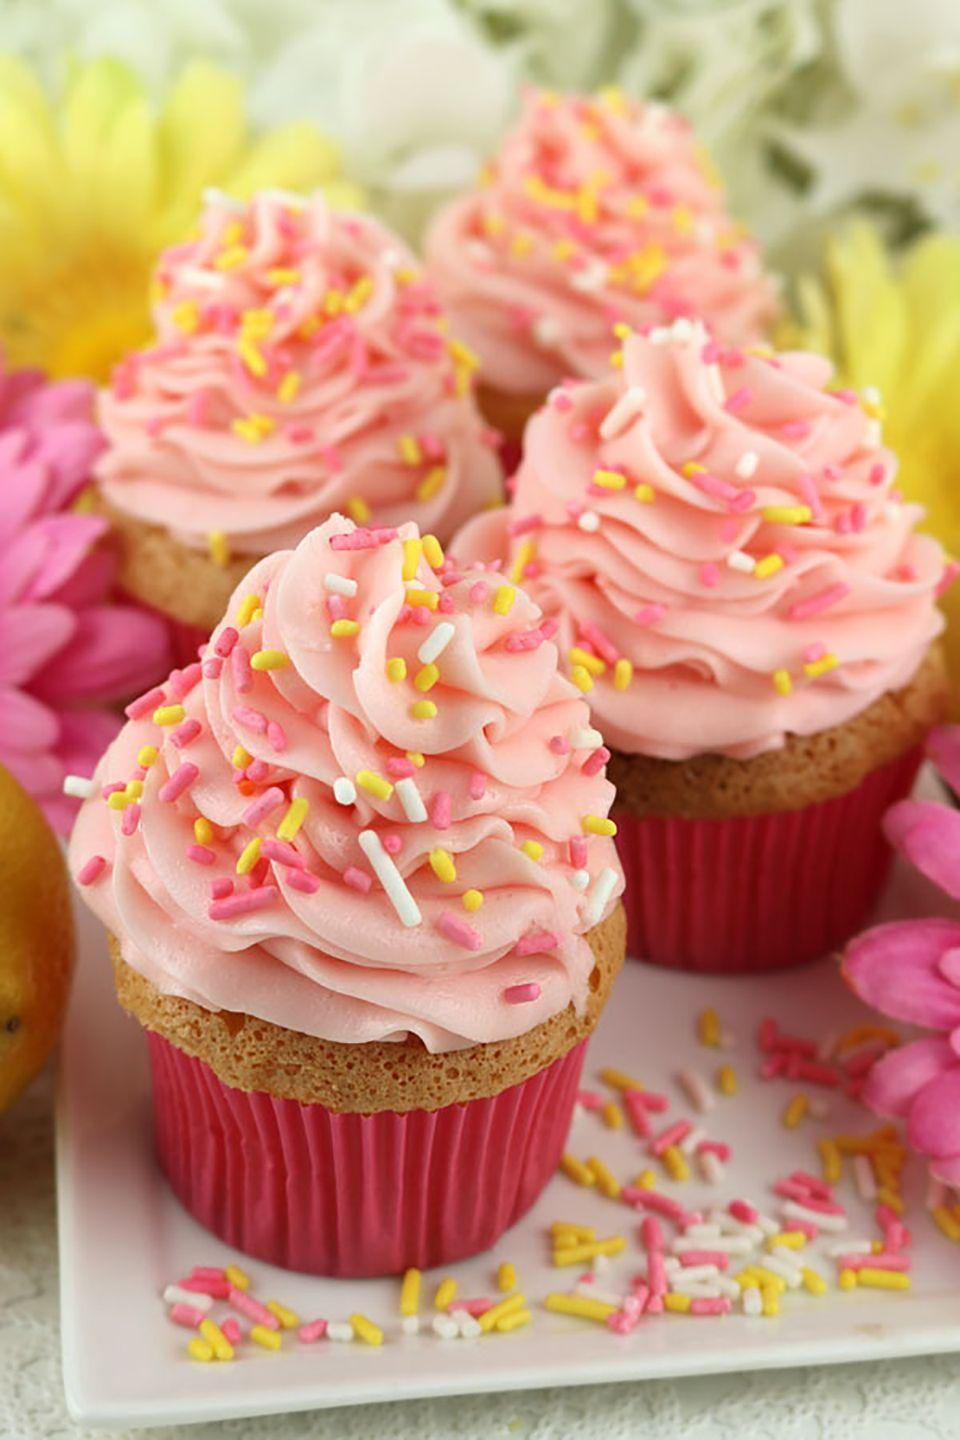 """<p>These soft pink cupcakes just embody spring and make a beautiful treat for Mother's Day. The pink lemonade buttercream frosting brings a tart sweetness to the light angel food base that's absolutely delightful. </p><p><strong>Get the recipe at <a href=""""http://www.twosisterscrafting.com/angel-food-cupcakes-with-pink-lemonade-frosting/"""" rel=""""nofollow noopener"""" target=""""_blank"""" data-ylk=""""slk:Two Sisters Crafting"""" class=""""link rapid-noclick-resp"""">Two Sisters Crafting</a>.</strong></p>"""